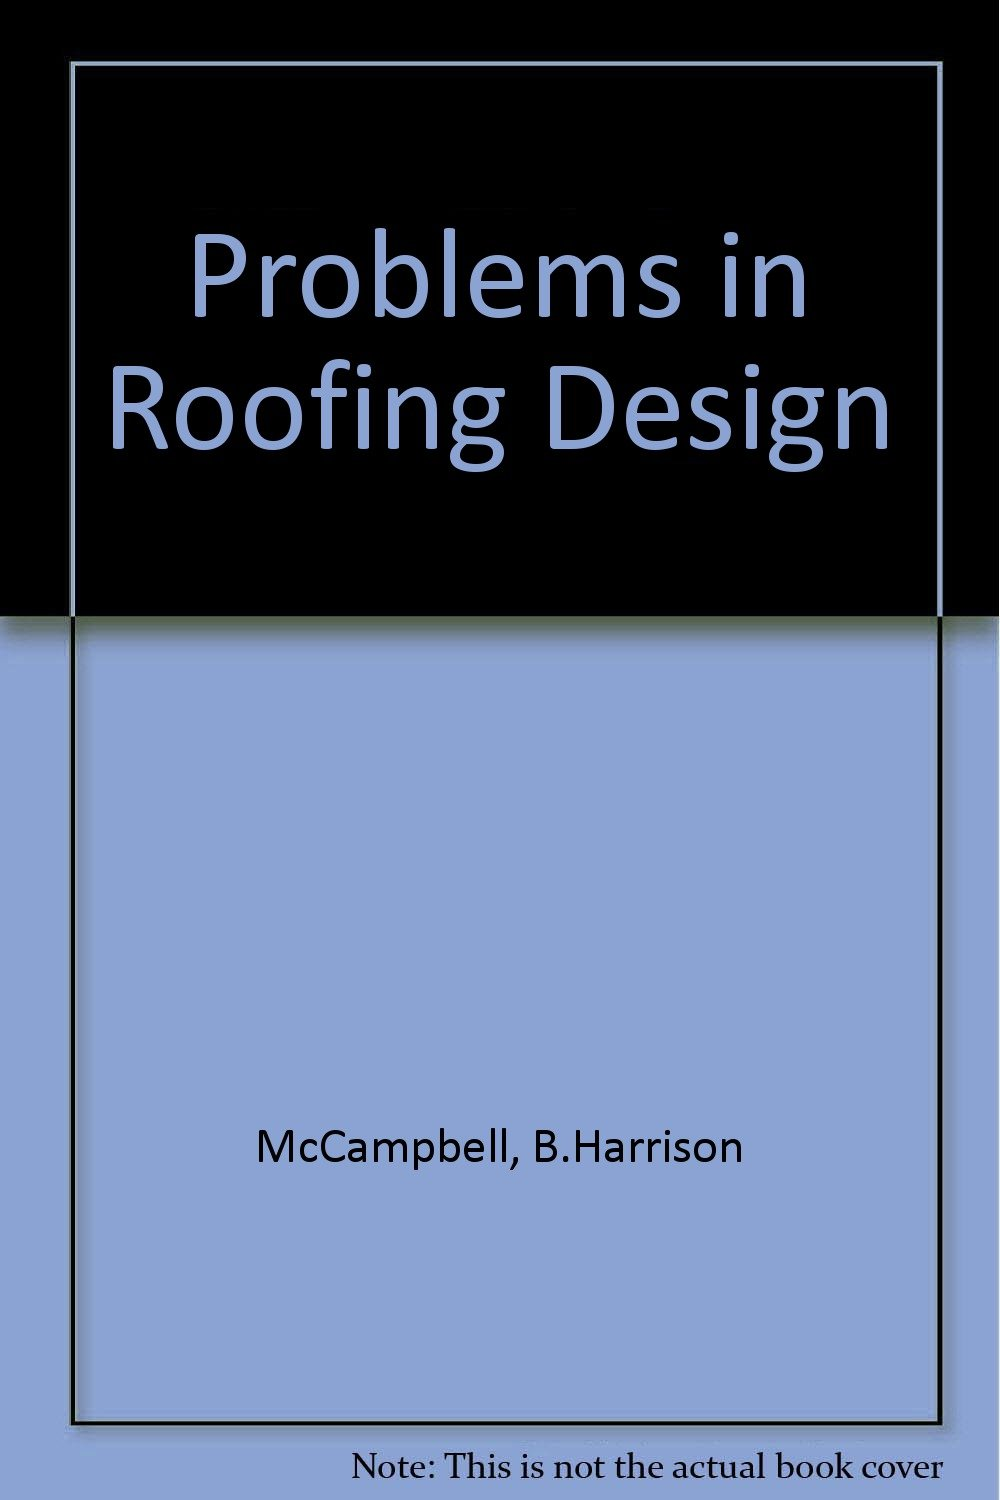 Problems in Roofing Design